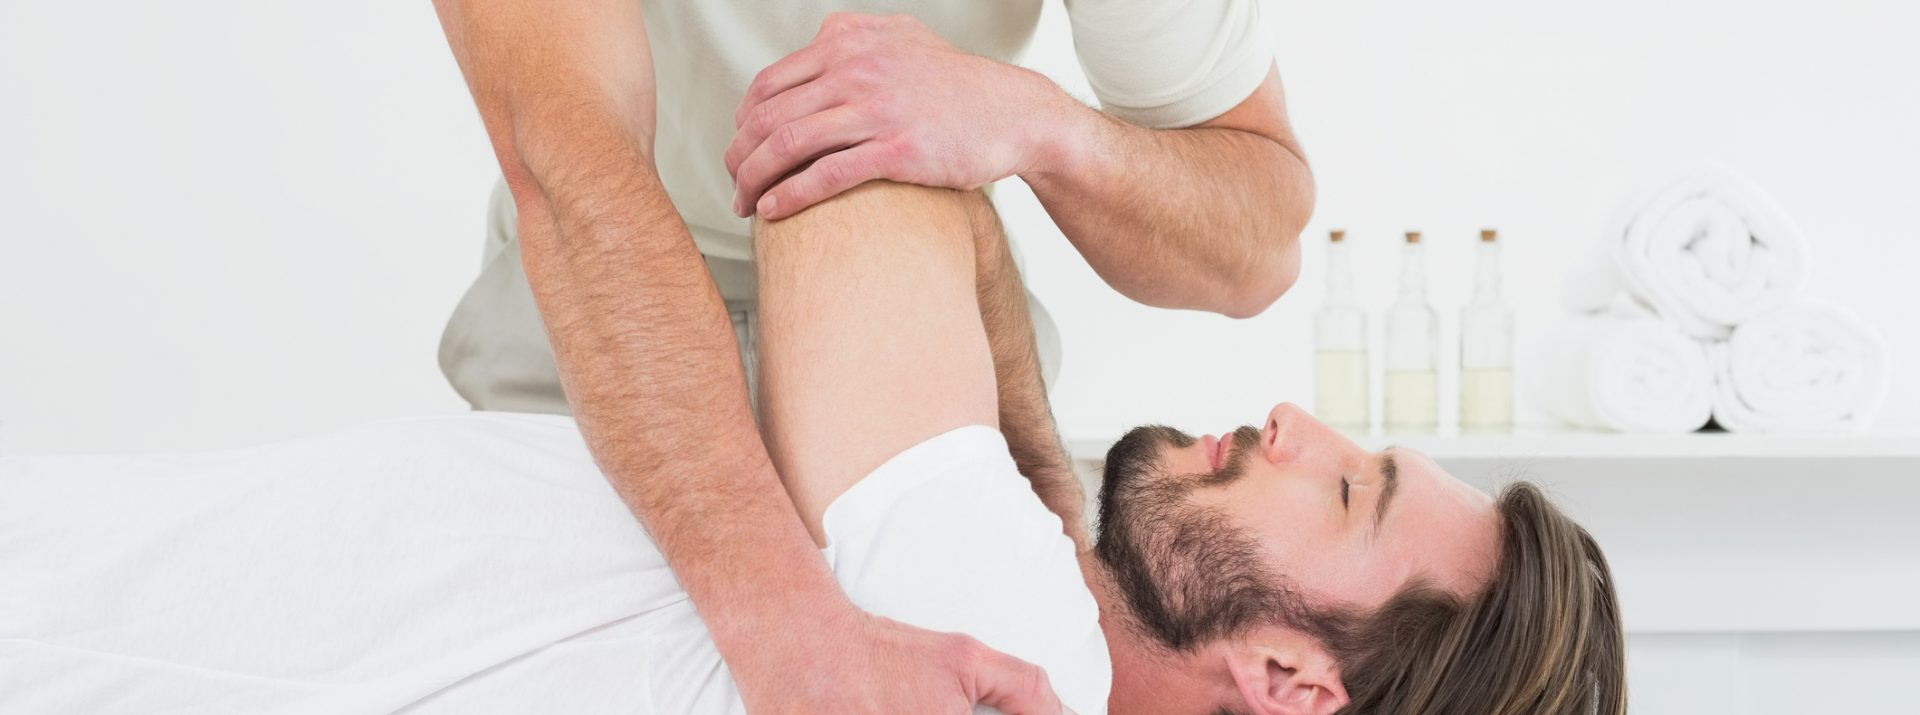 Our therapists have years of experiencing